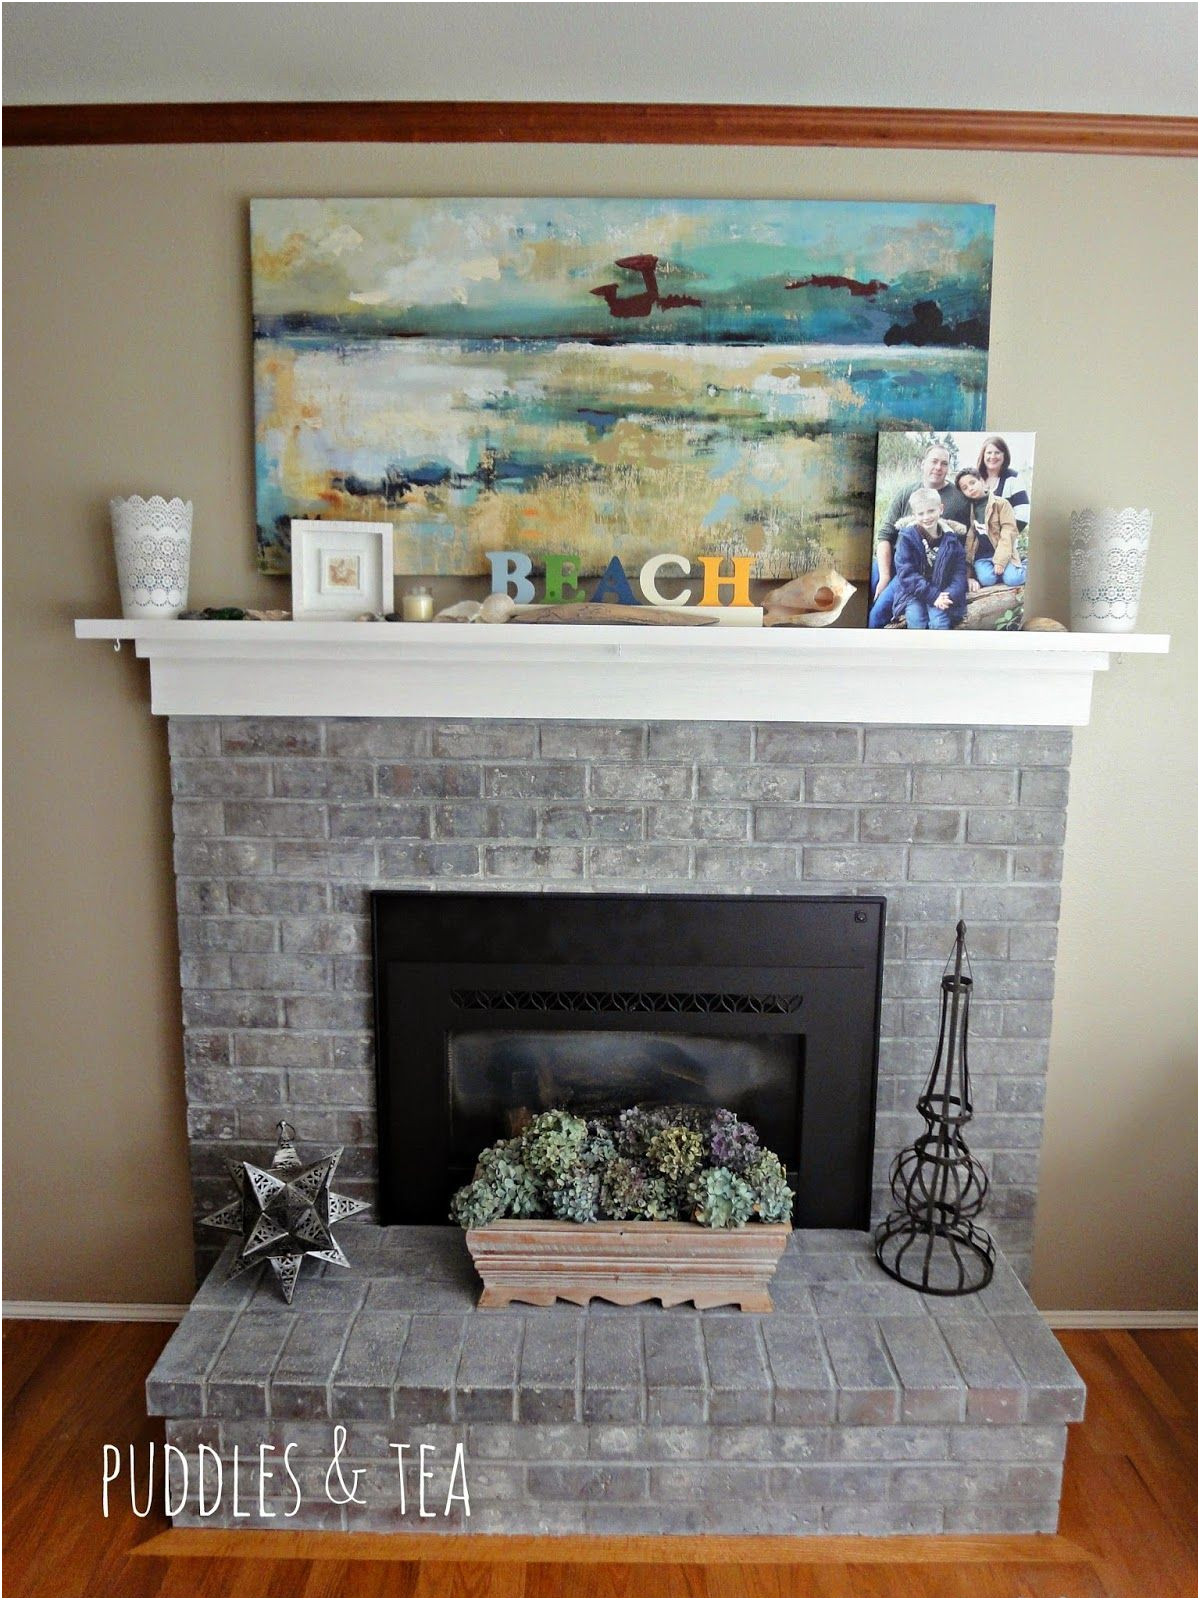 Remodelling Fireplace Ideas Inspirational Puddles & Tea White Wash Brick Fireplace Makeover